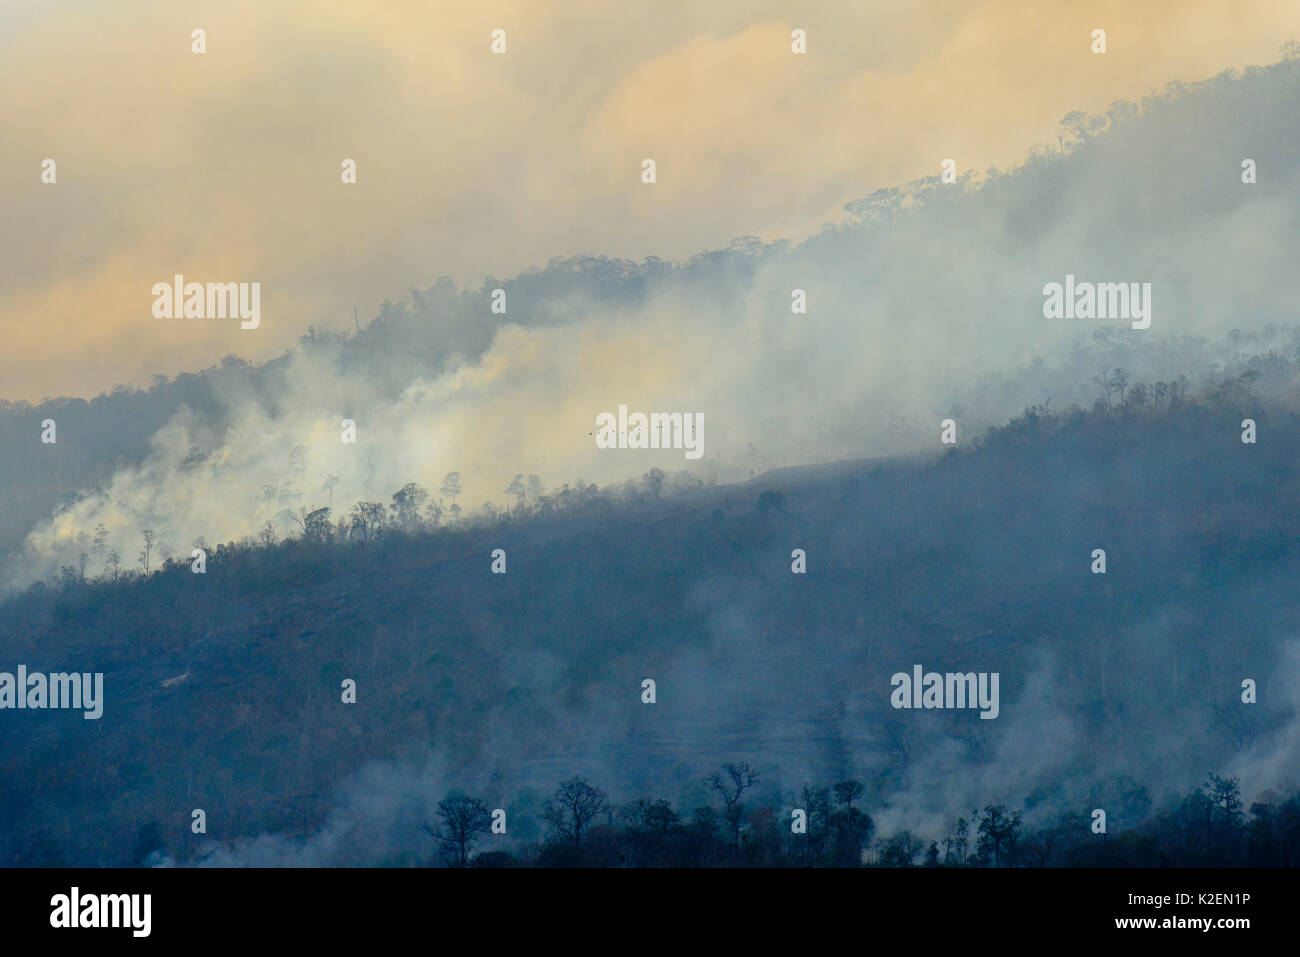 Fire inside the Tangkoko National Park with birds flying in the distance. The fire lasted two weeks, until it was extinguished by a storm from the sea. Sulawesi, Indonesia, October 2015. - Stock Image